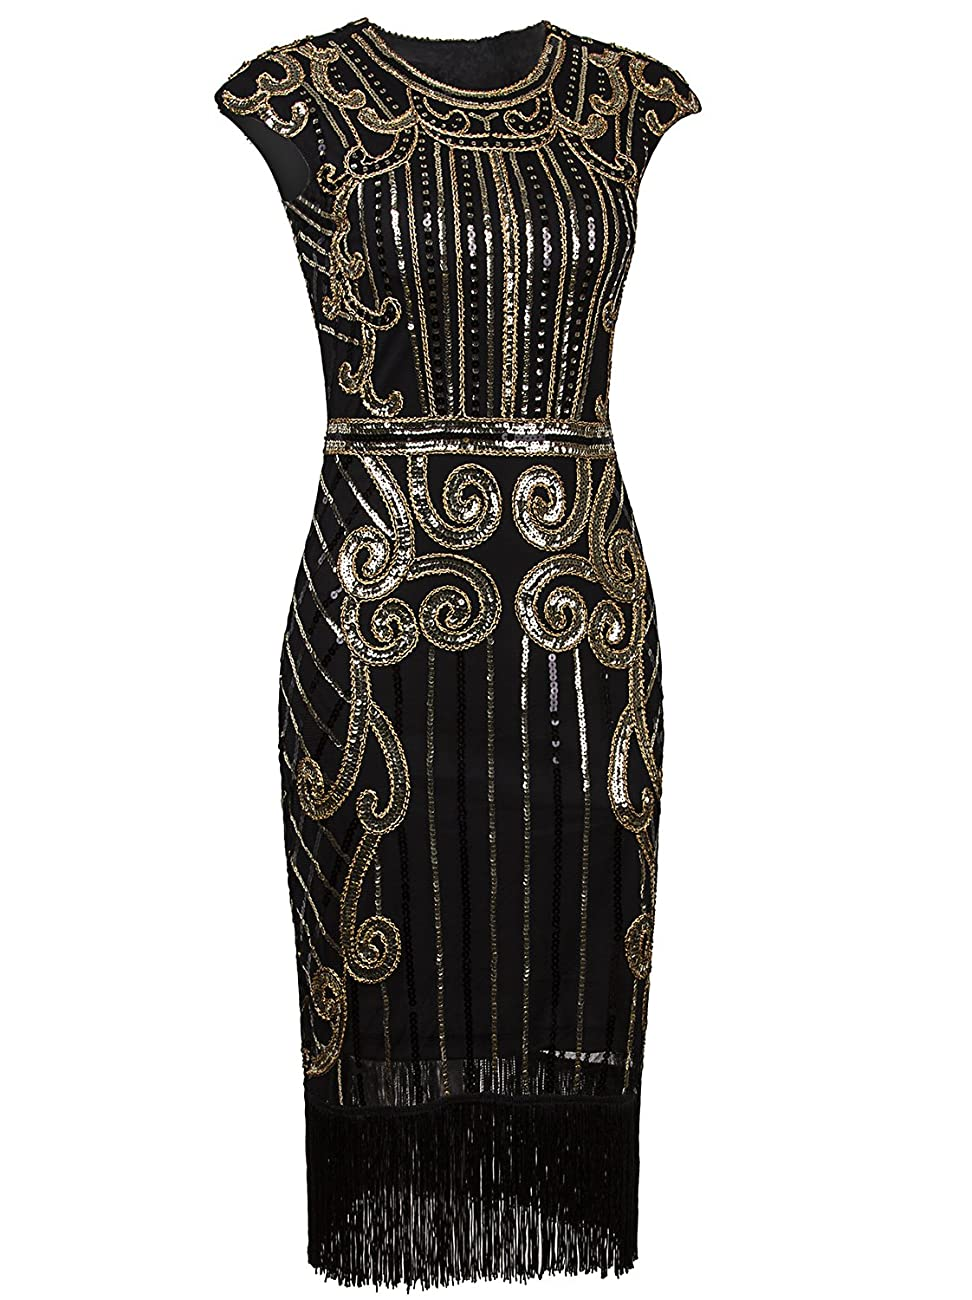 Vijiv 1920s Vintage Inspired Sequin Embellished Fringe Long Gatsby Flapper Dress 0